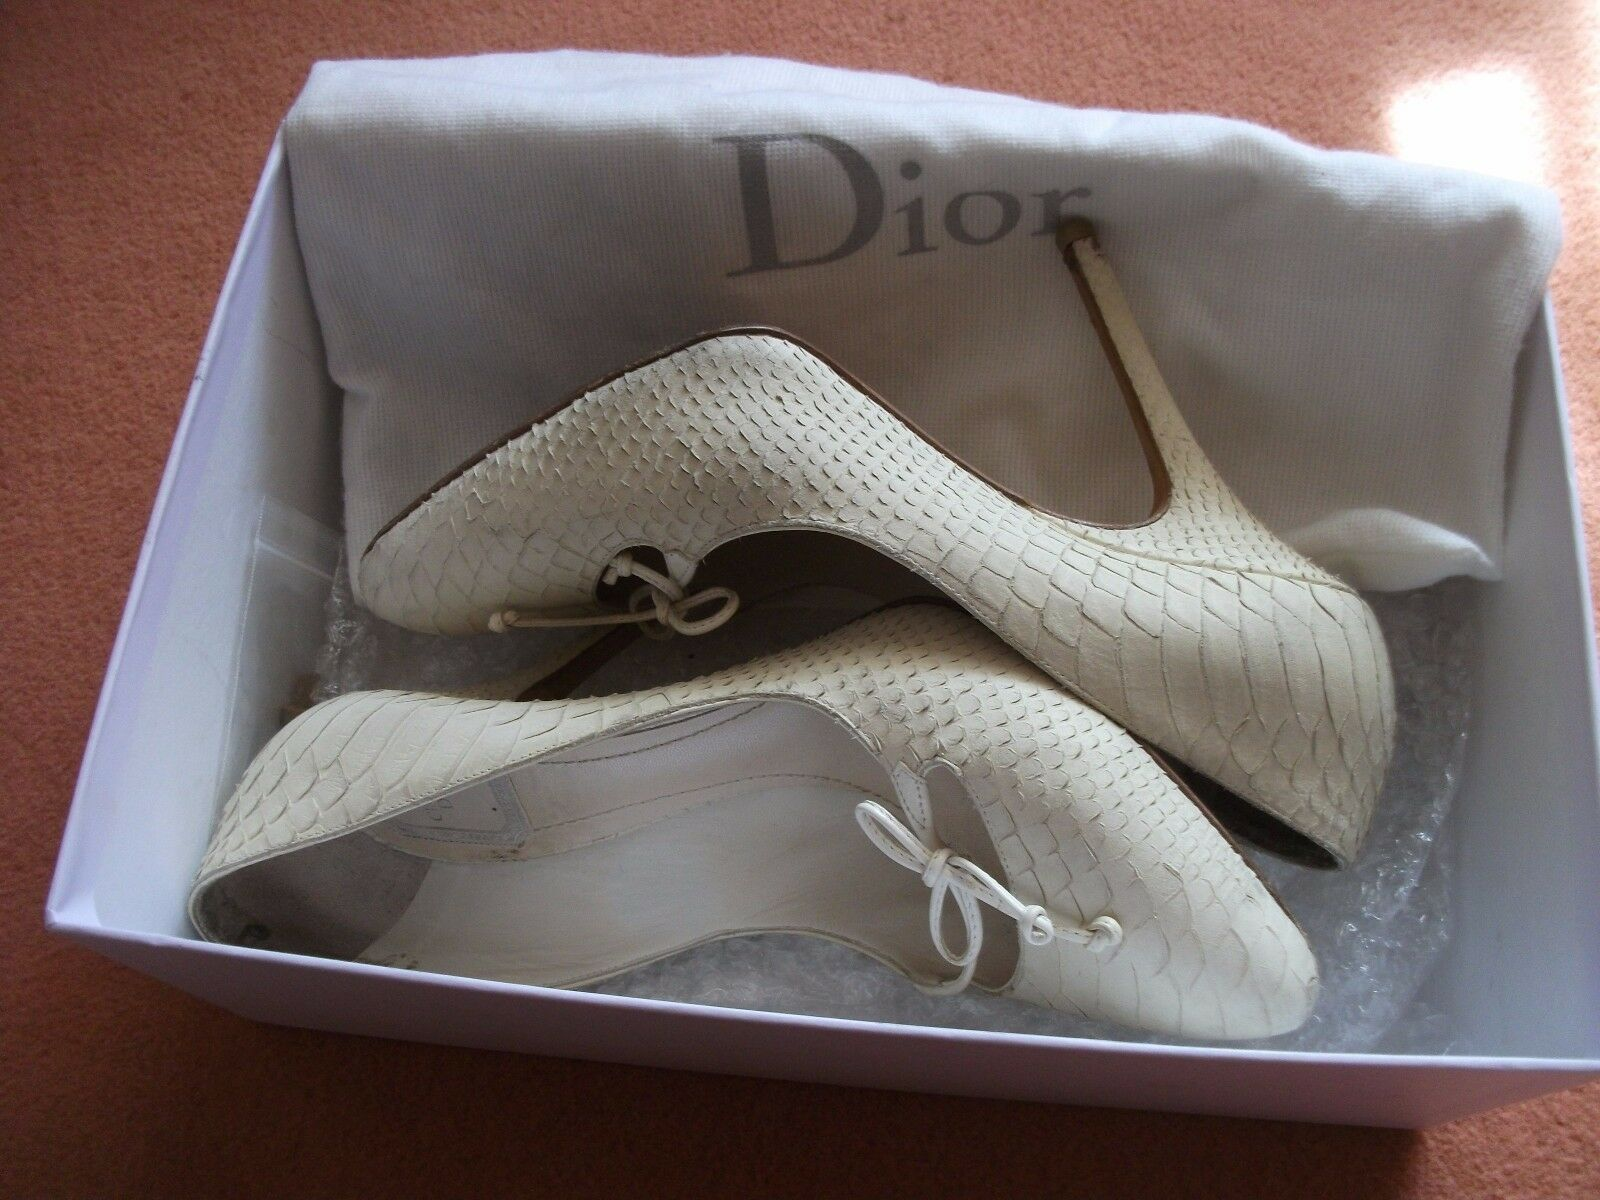 Christian Dior stunning runway shoes size 5.5, cream, snake skin,  when new.